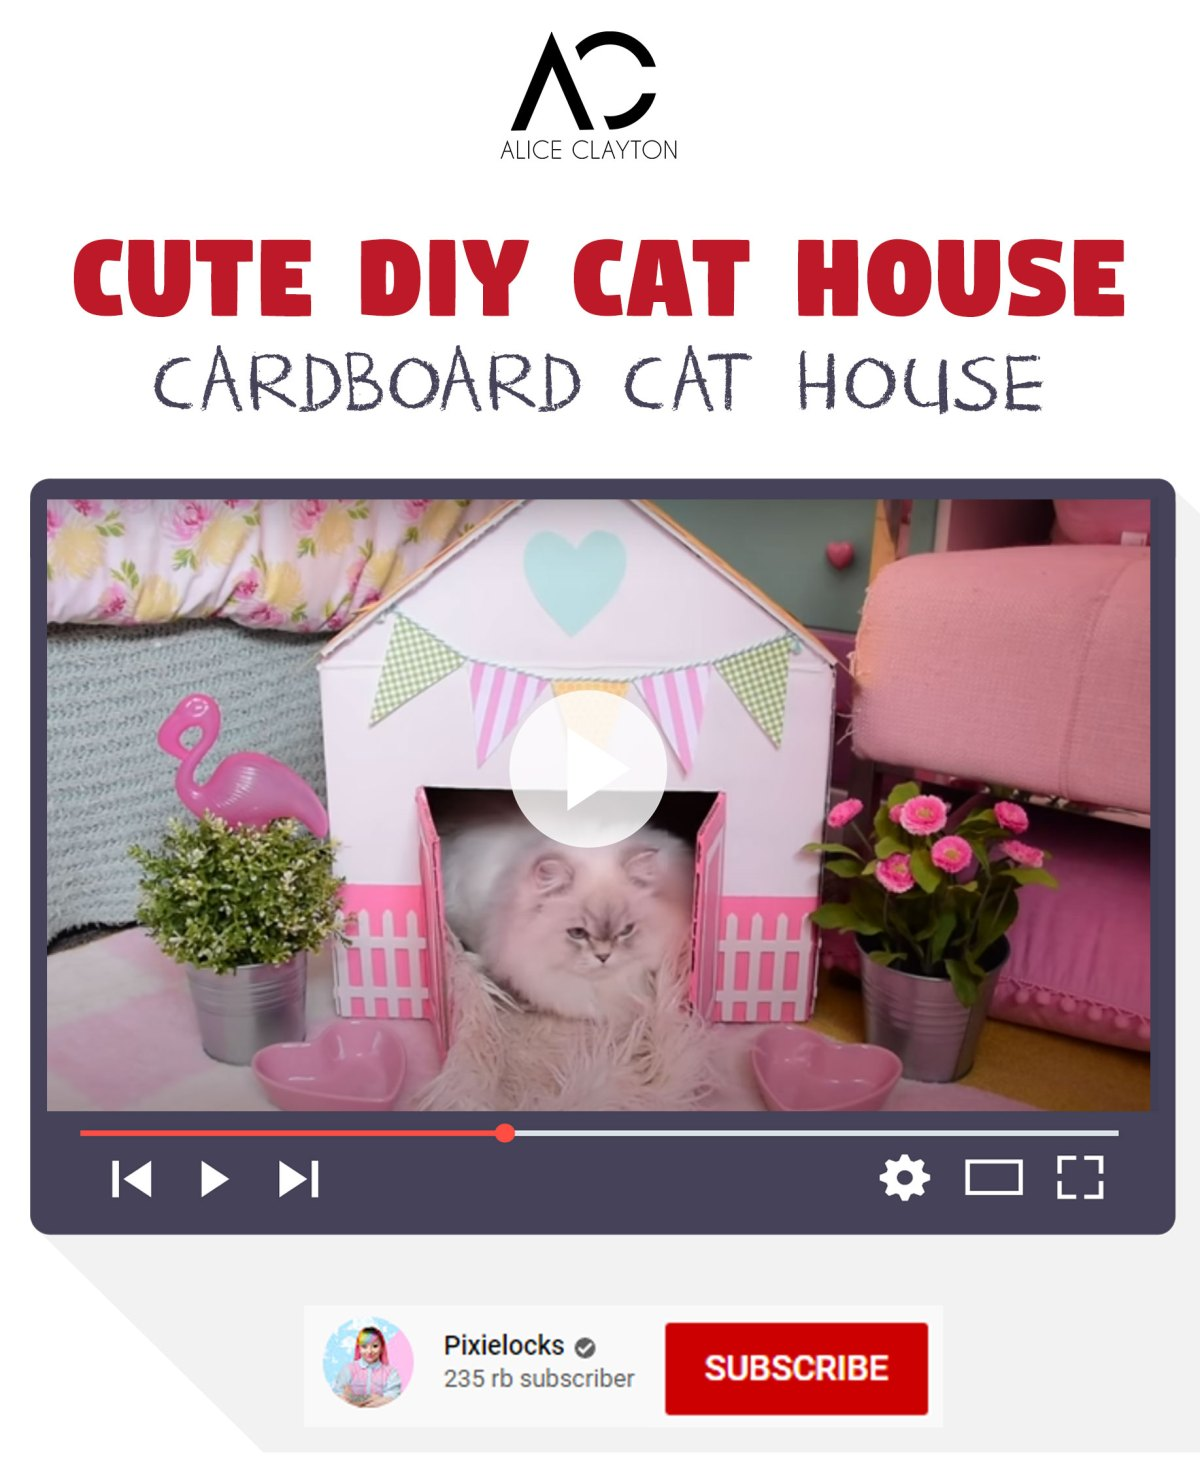 Cute DIY cat house